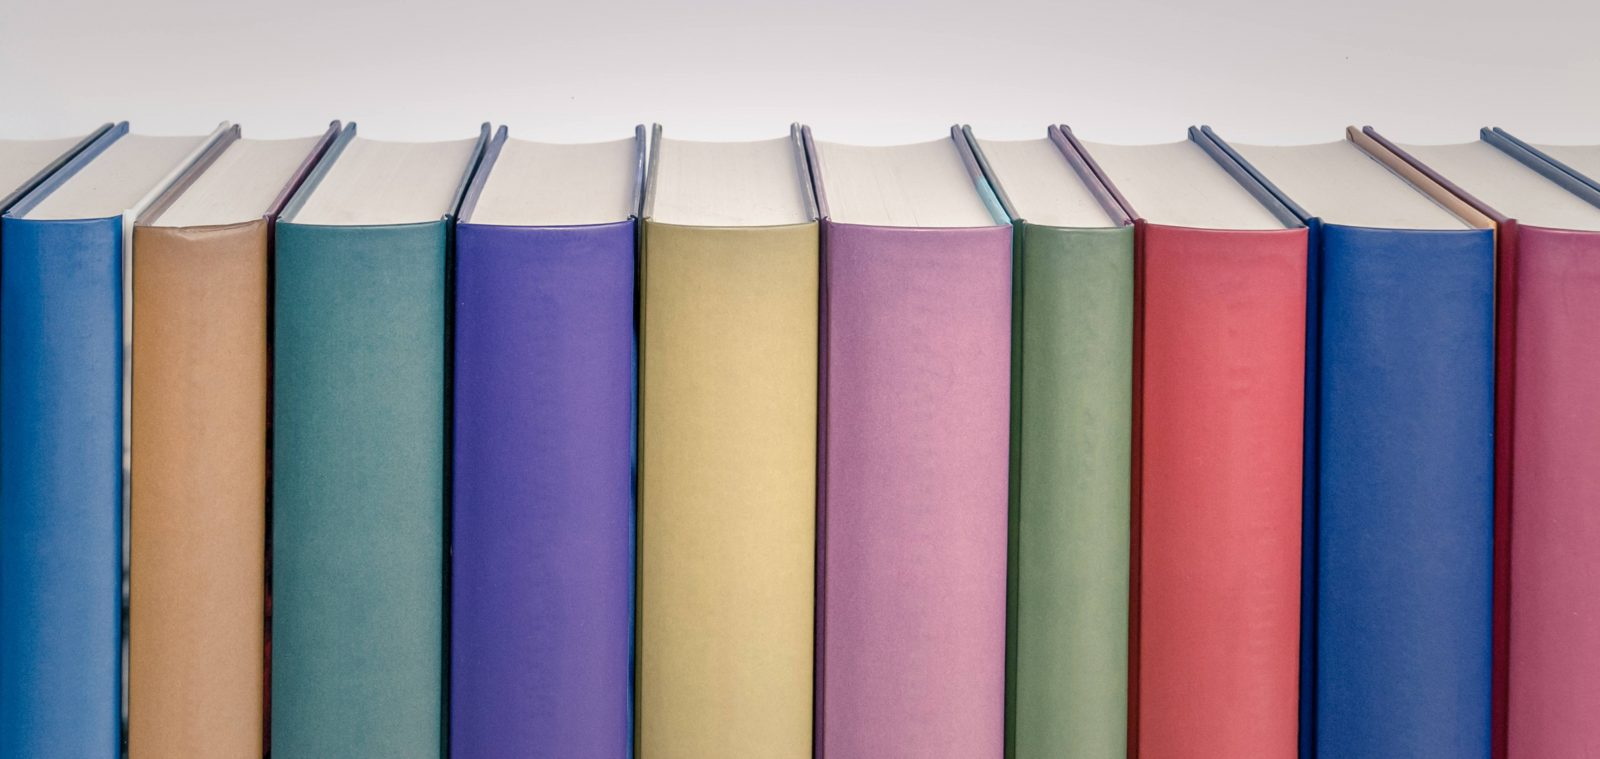 Blank book spine row in various colours